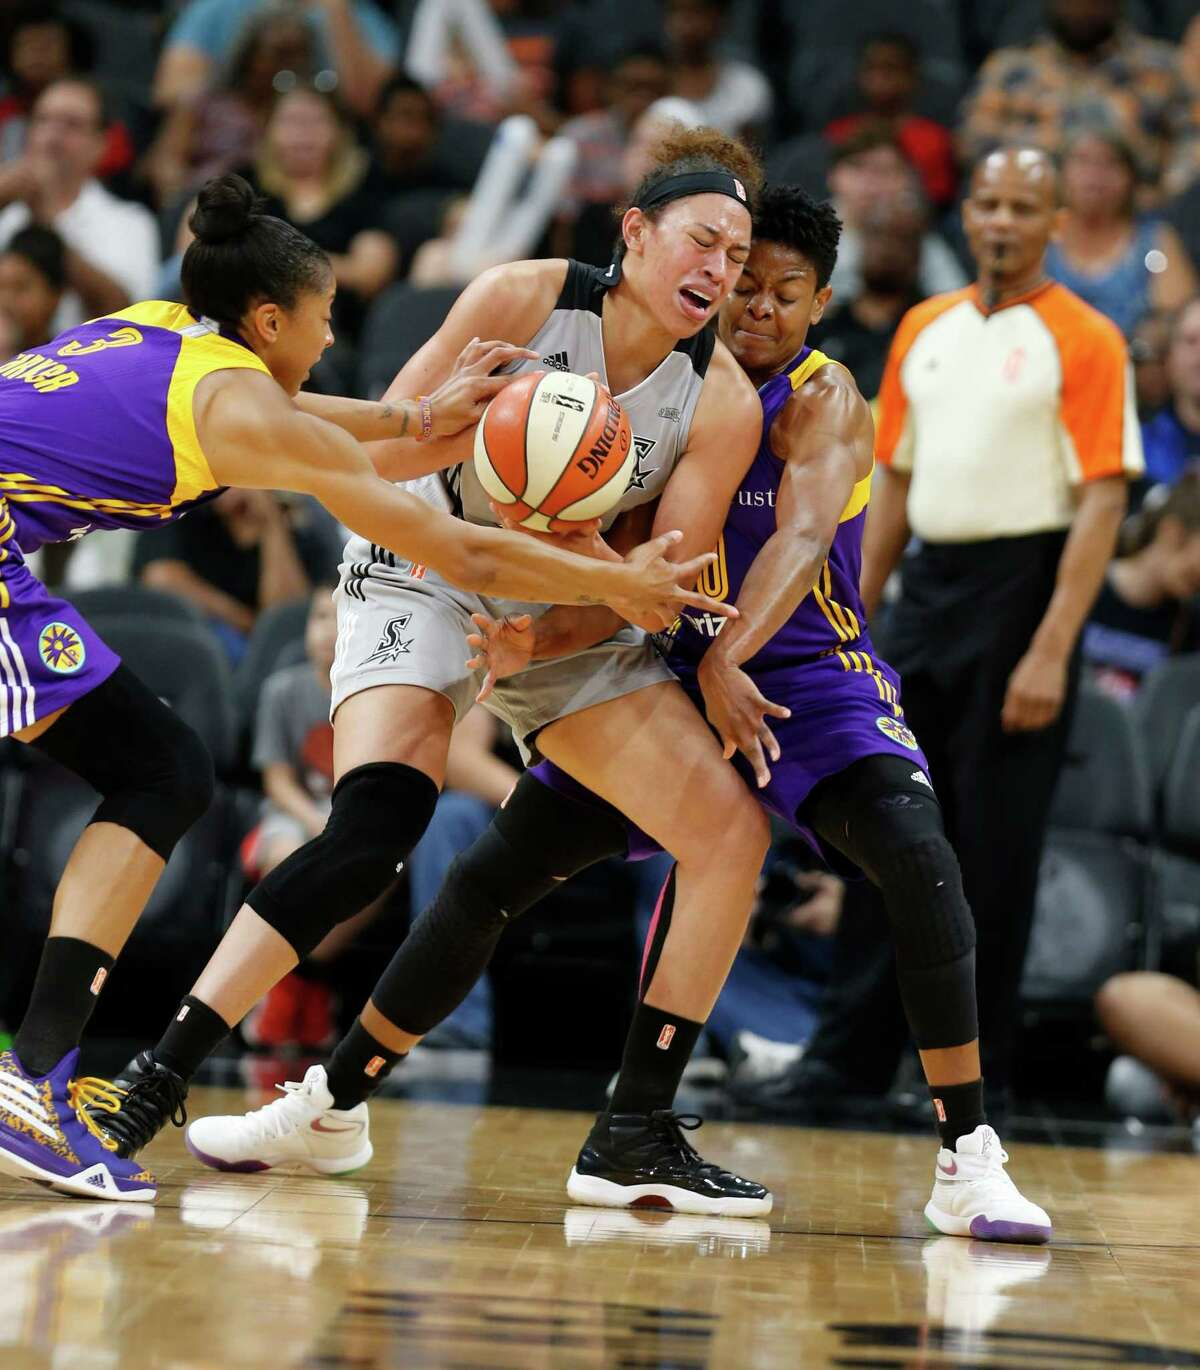 The Stars' Dearica Hamby (center) steals rhe ball from the Sparks' Candace Parker (left) as Alana Beard tries to get it back.